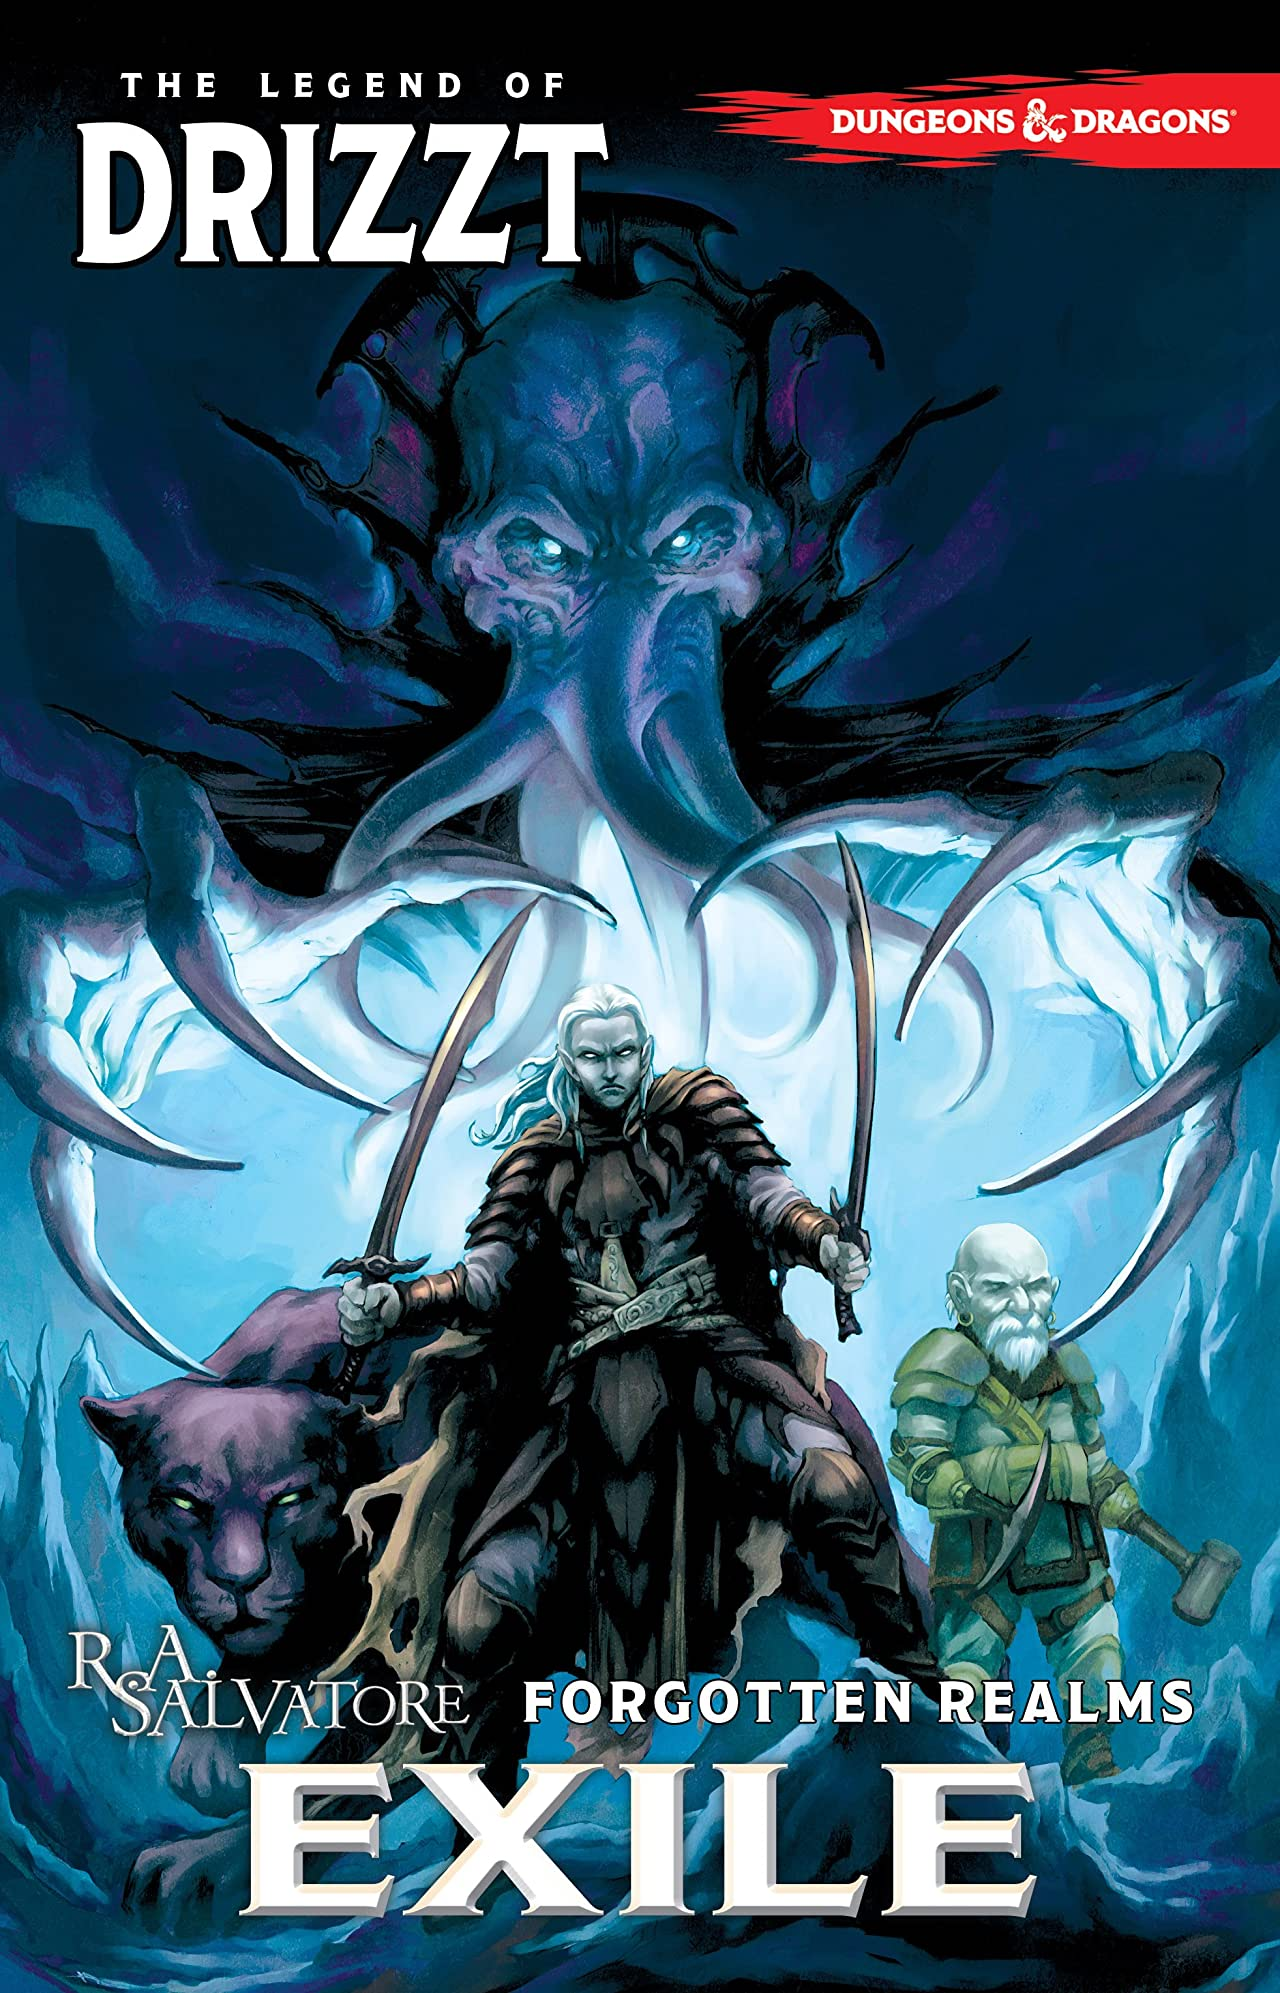 Dungeons & Dragons: The Legend of Drizzt Vol. 2: Exile